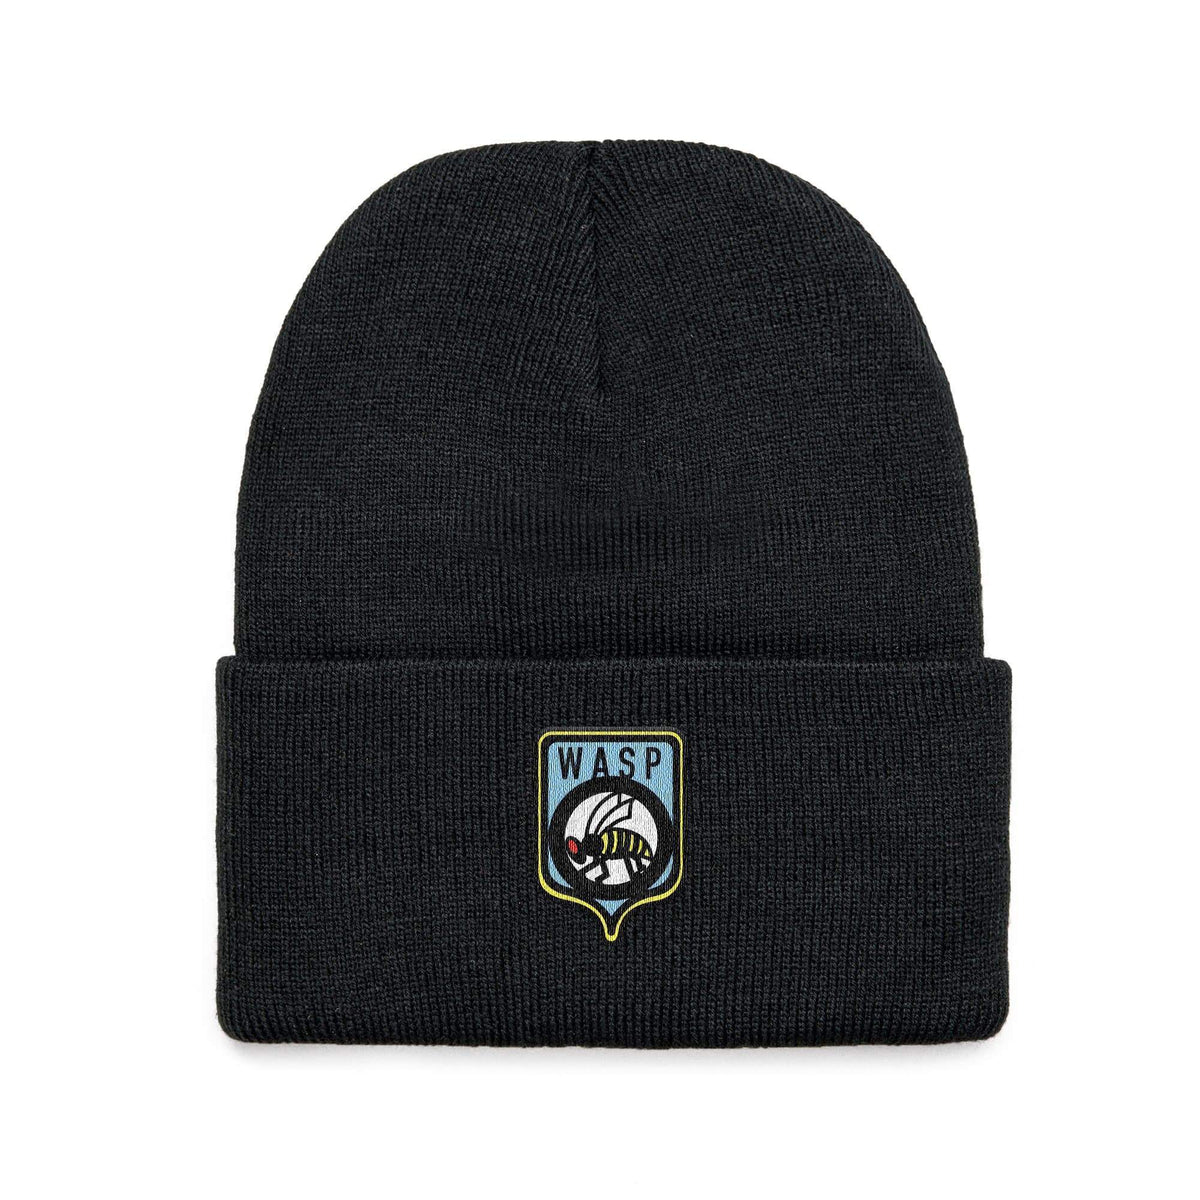 Stingray WASP Logo Beanie (Wooly hat) [Official & Exclusive] - The Gerry Anderson Store